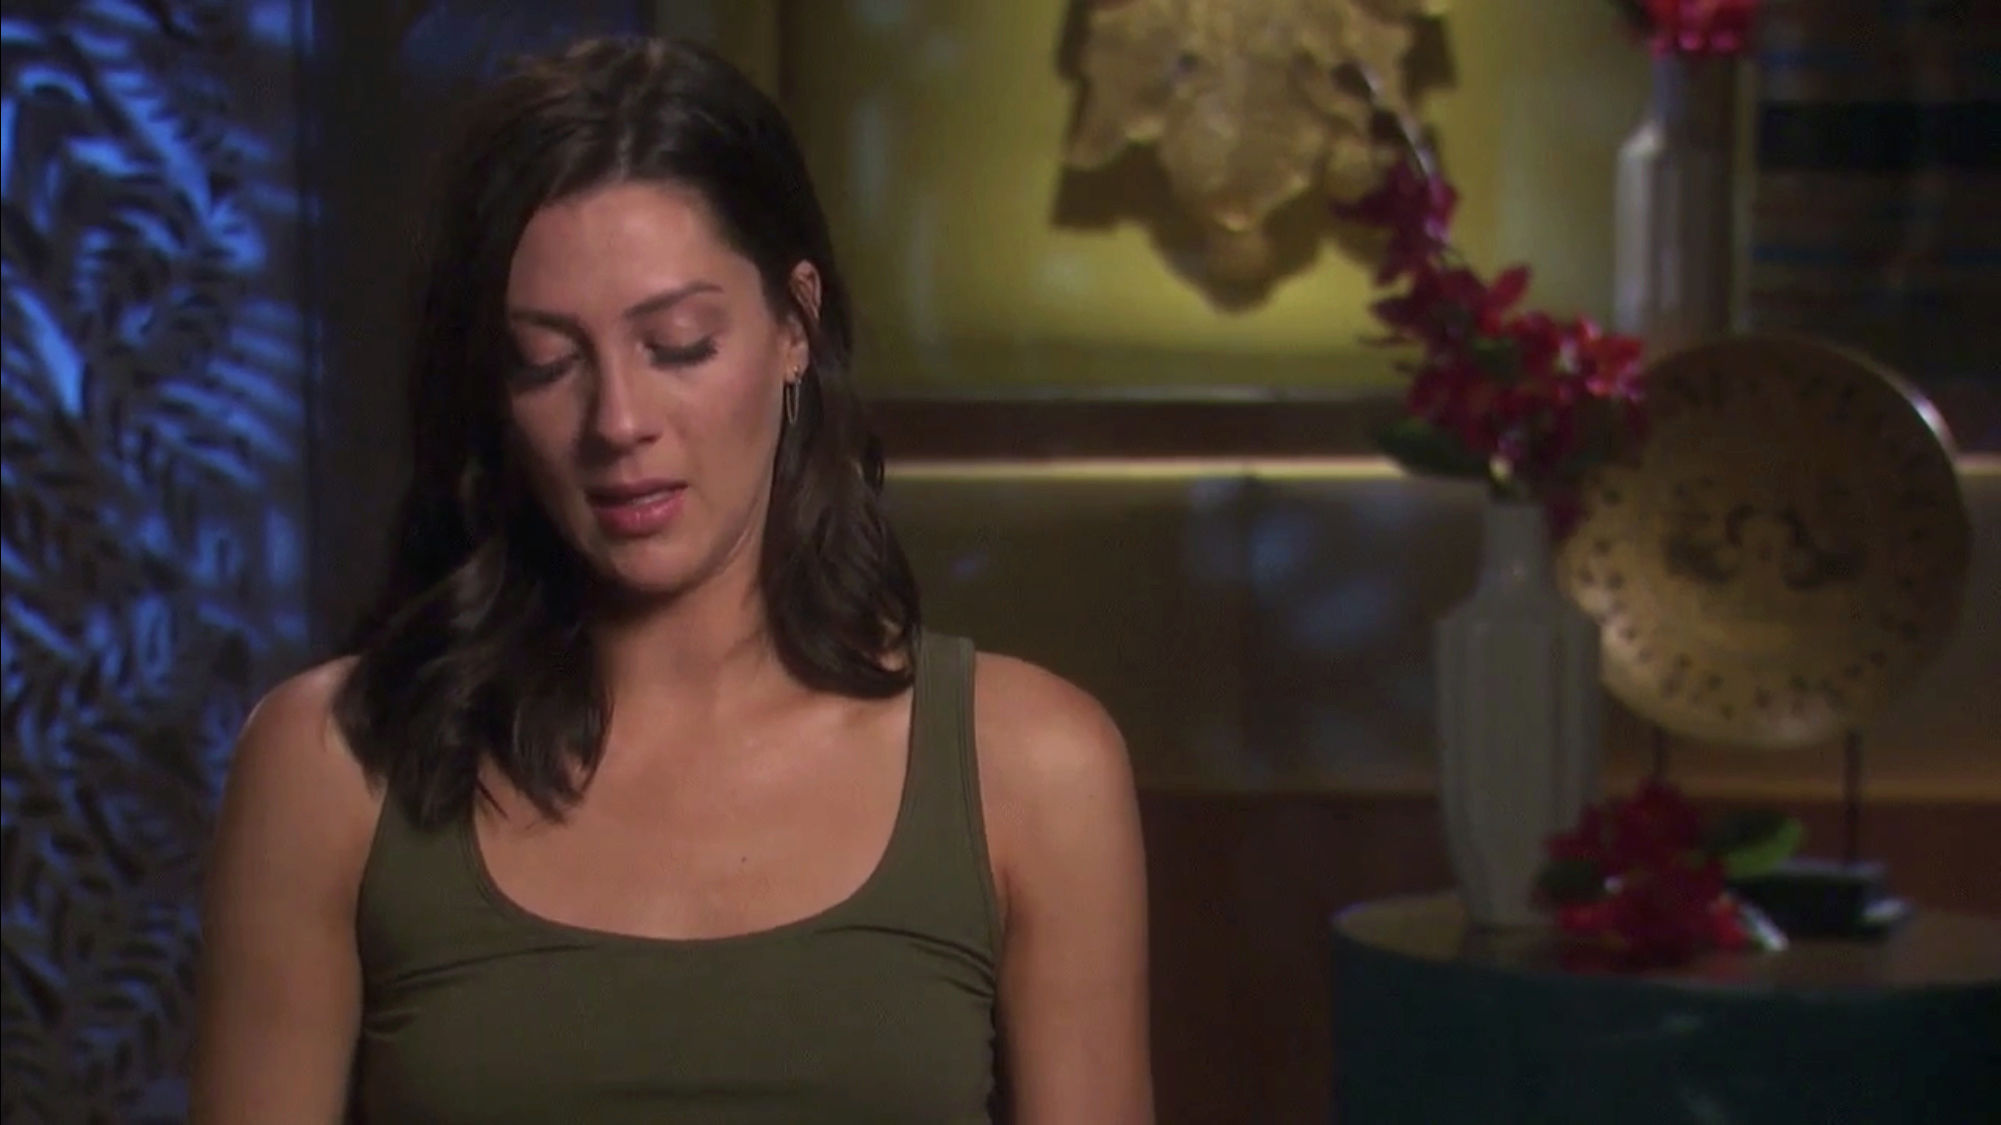 Bachelorette 14 - Becca Kufrin - ScreenCaps - NO Discussion - *Sleuthing Spoilers* 69f6d110